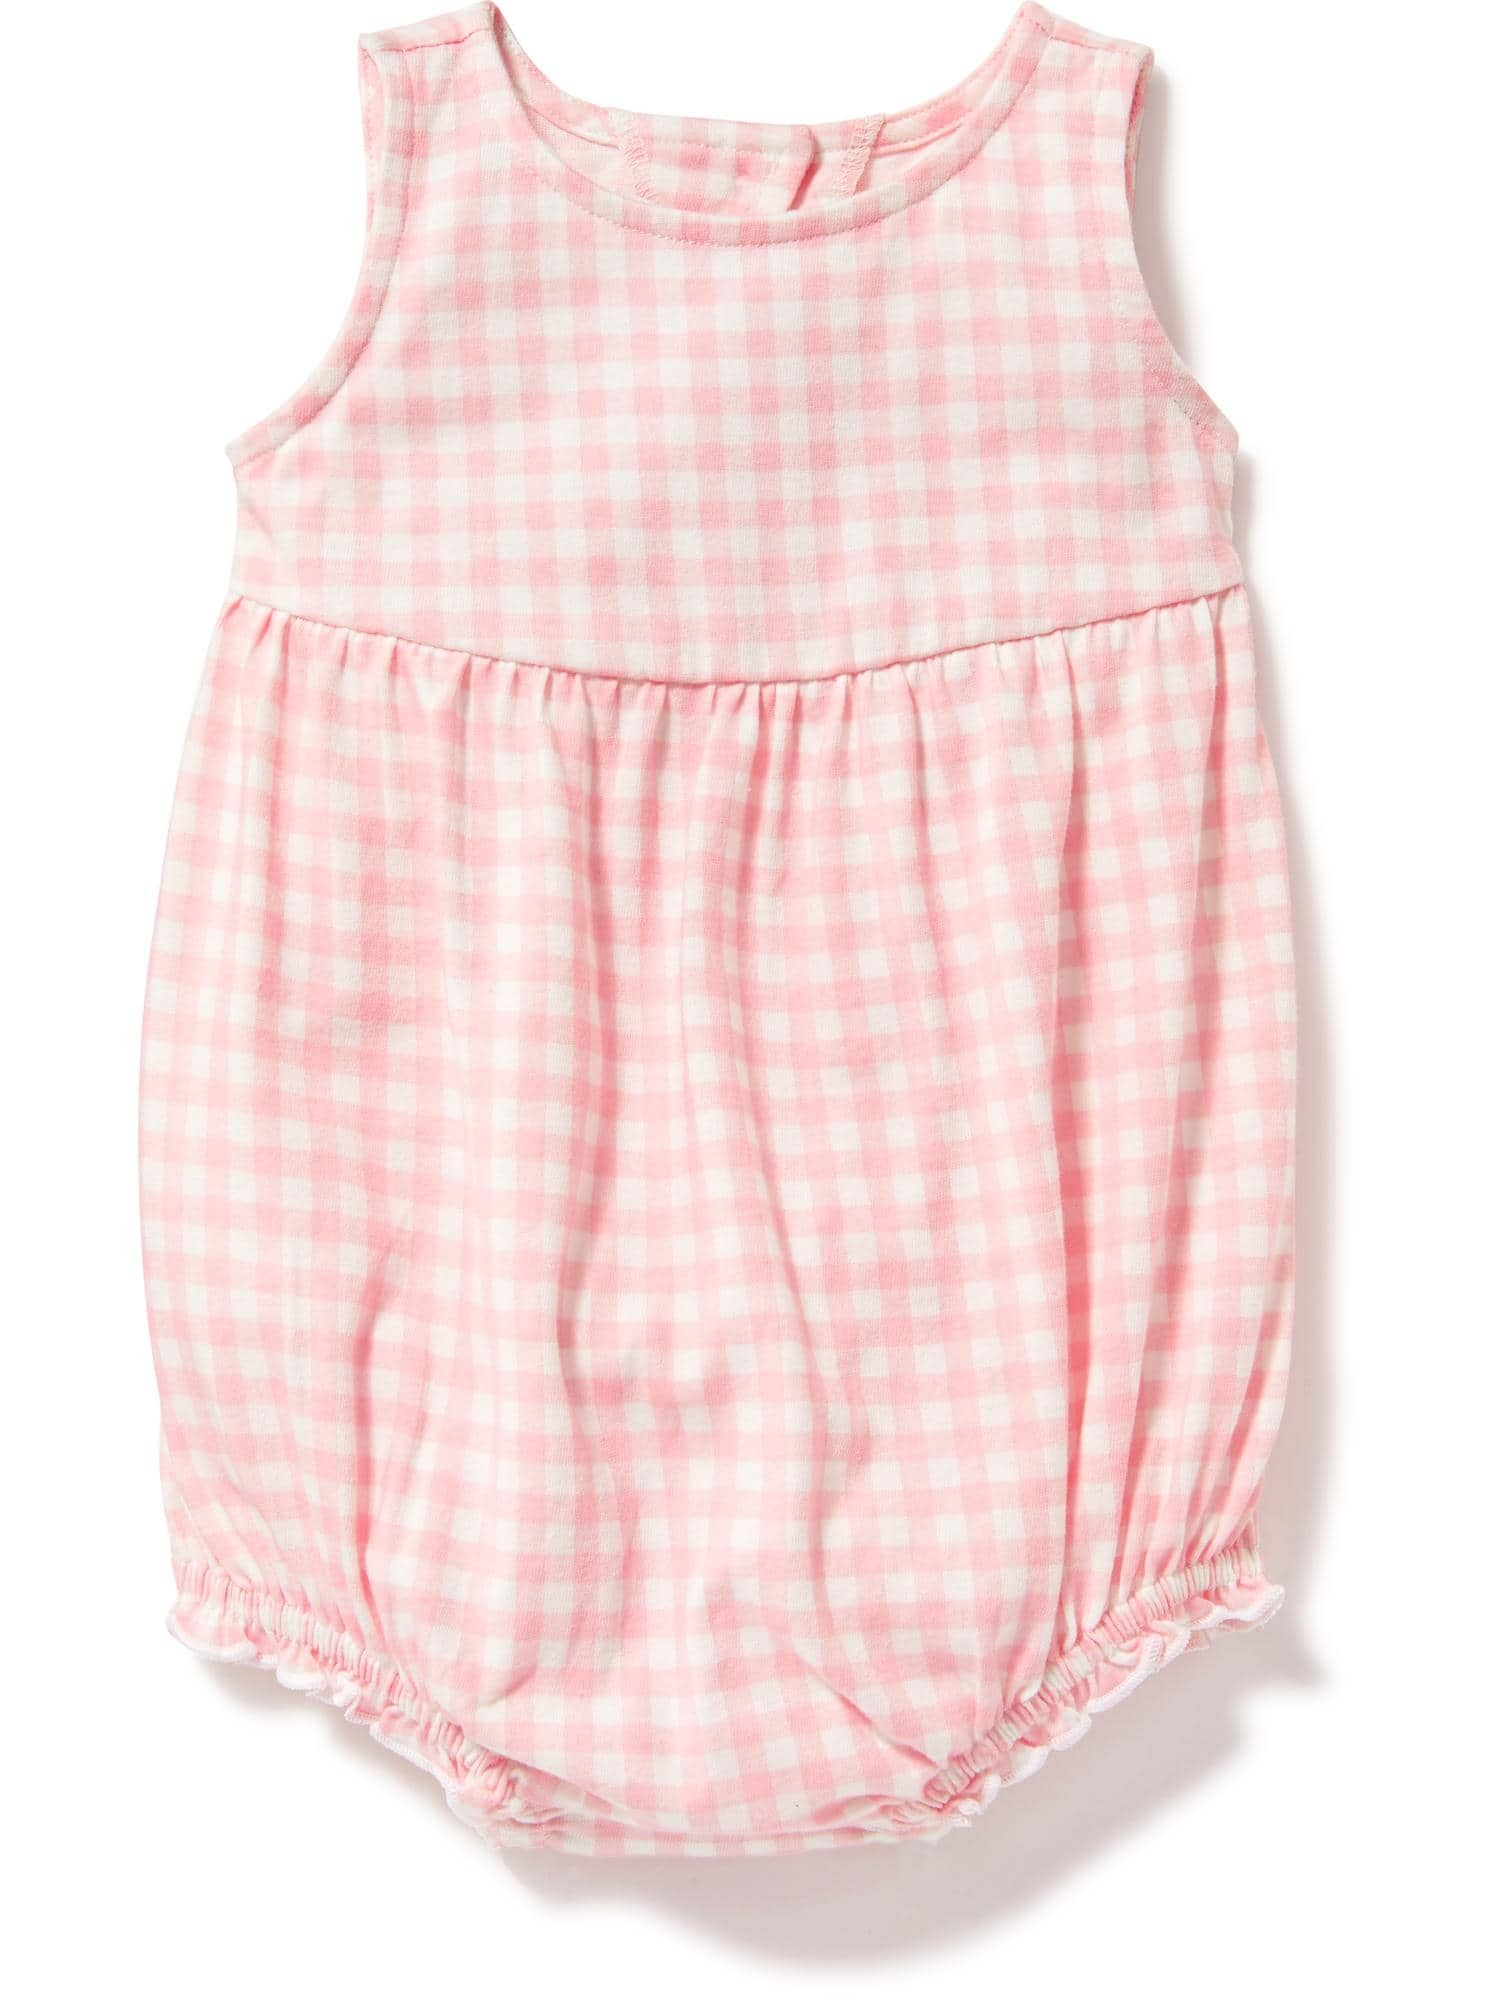 OLD NAVY bubble body suit Future Baby Clothes Pinterest